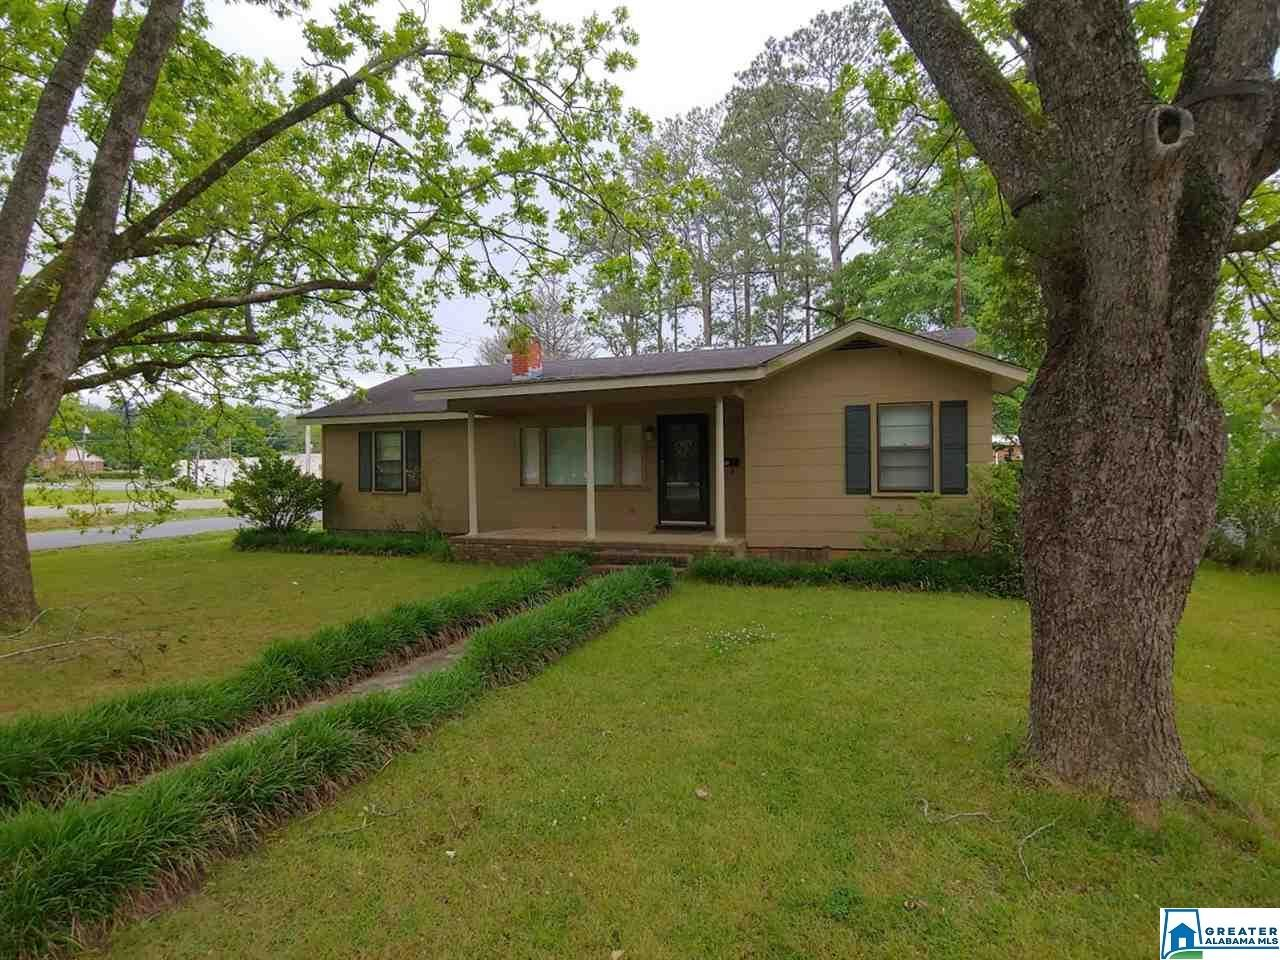 249 S CANNON AVE, Sylacauga, AL 35150 - MLS#: 881716